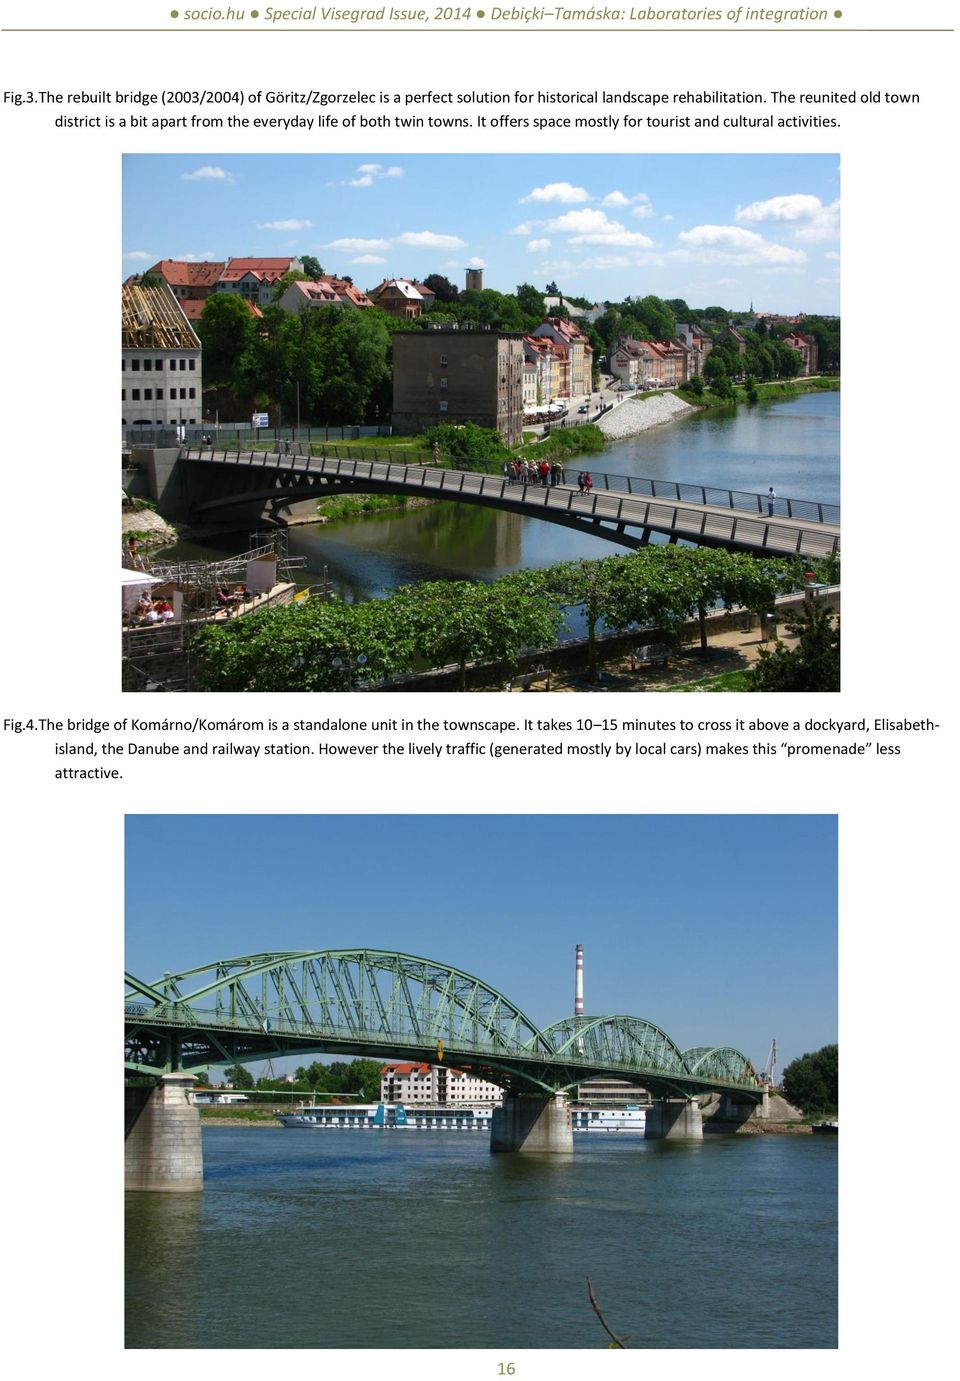 It offers space mostly for tourist and cultural activities. Fig.4.The bridge of Komárno/Komárom is a standalone unit in the townscape.